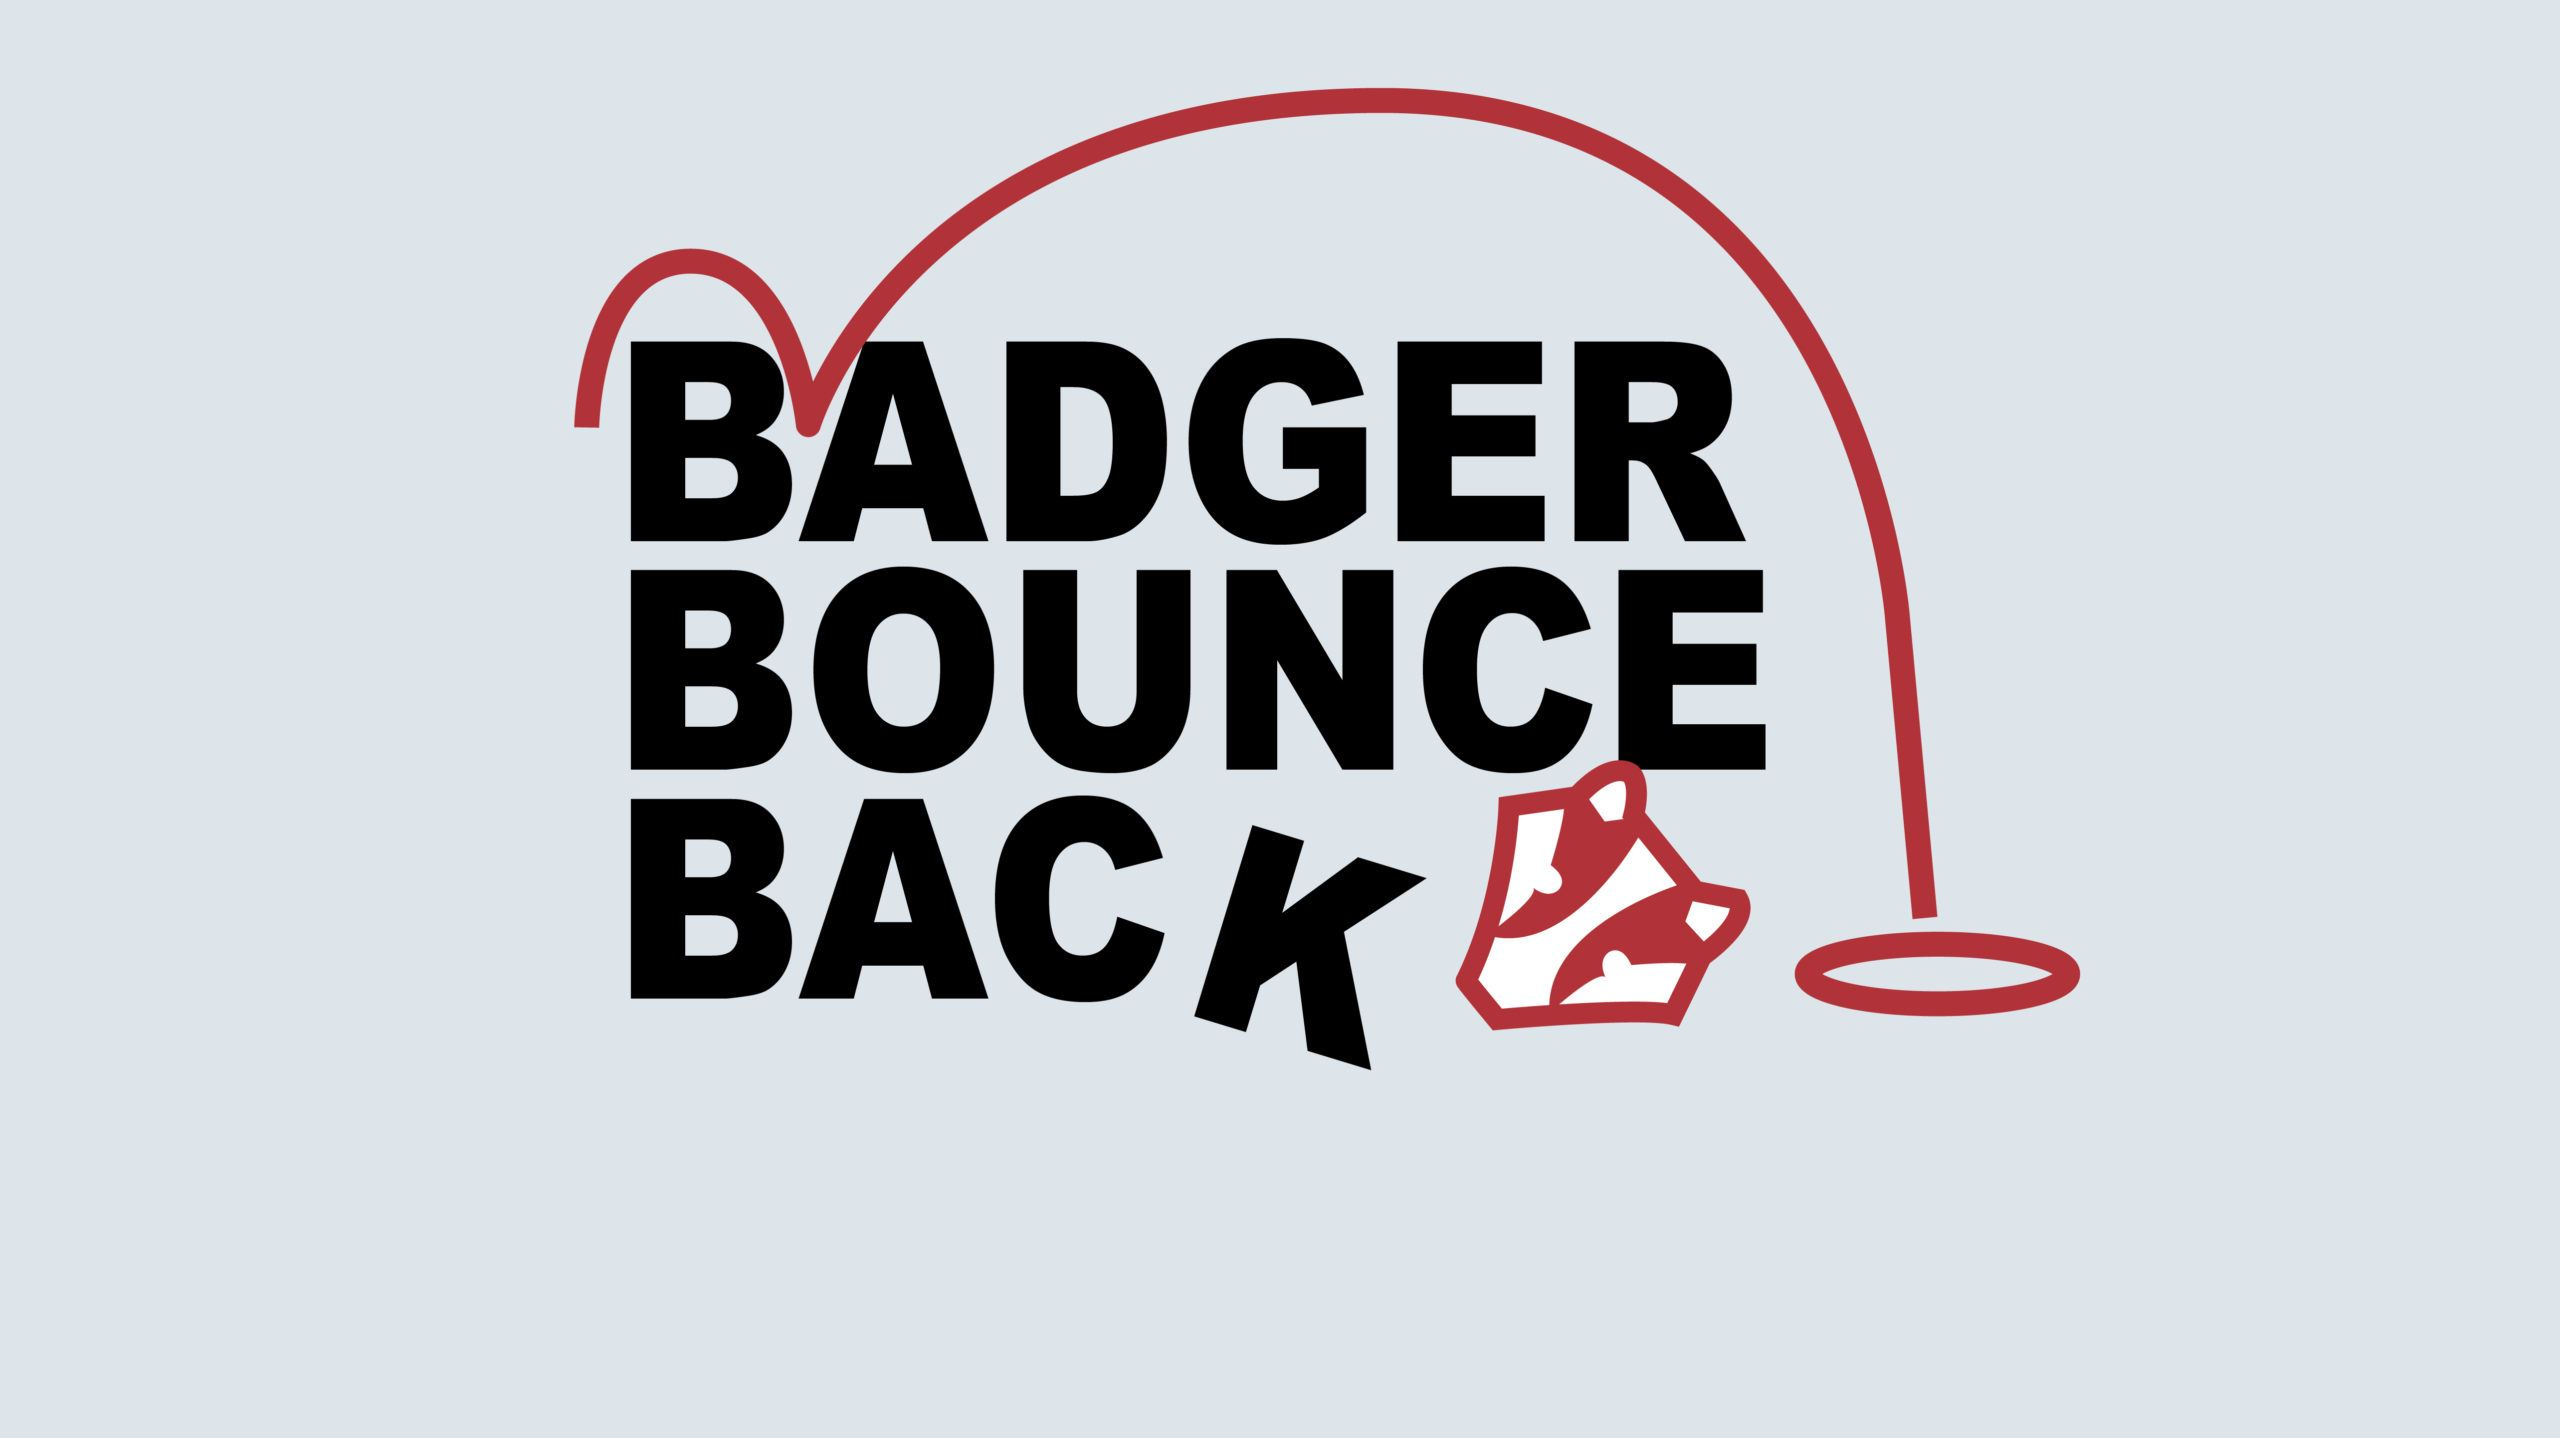 Badger-Bounce-Back-scaled